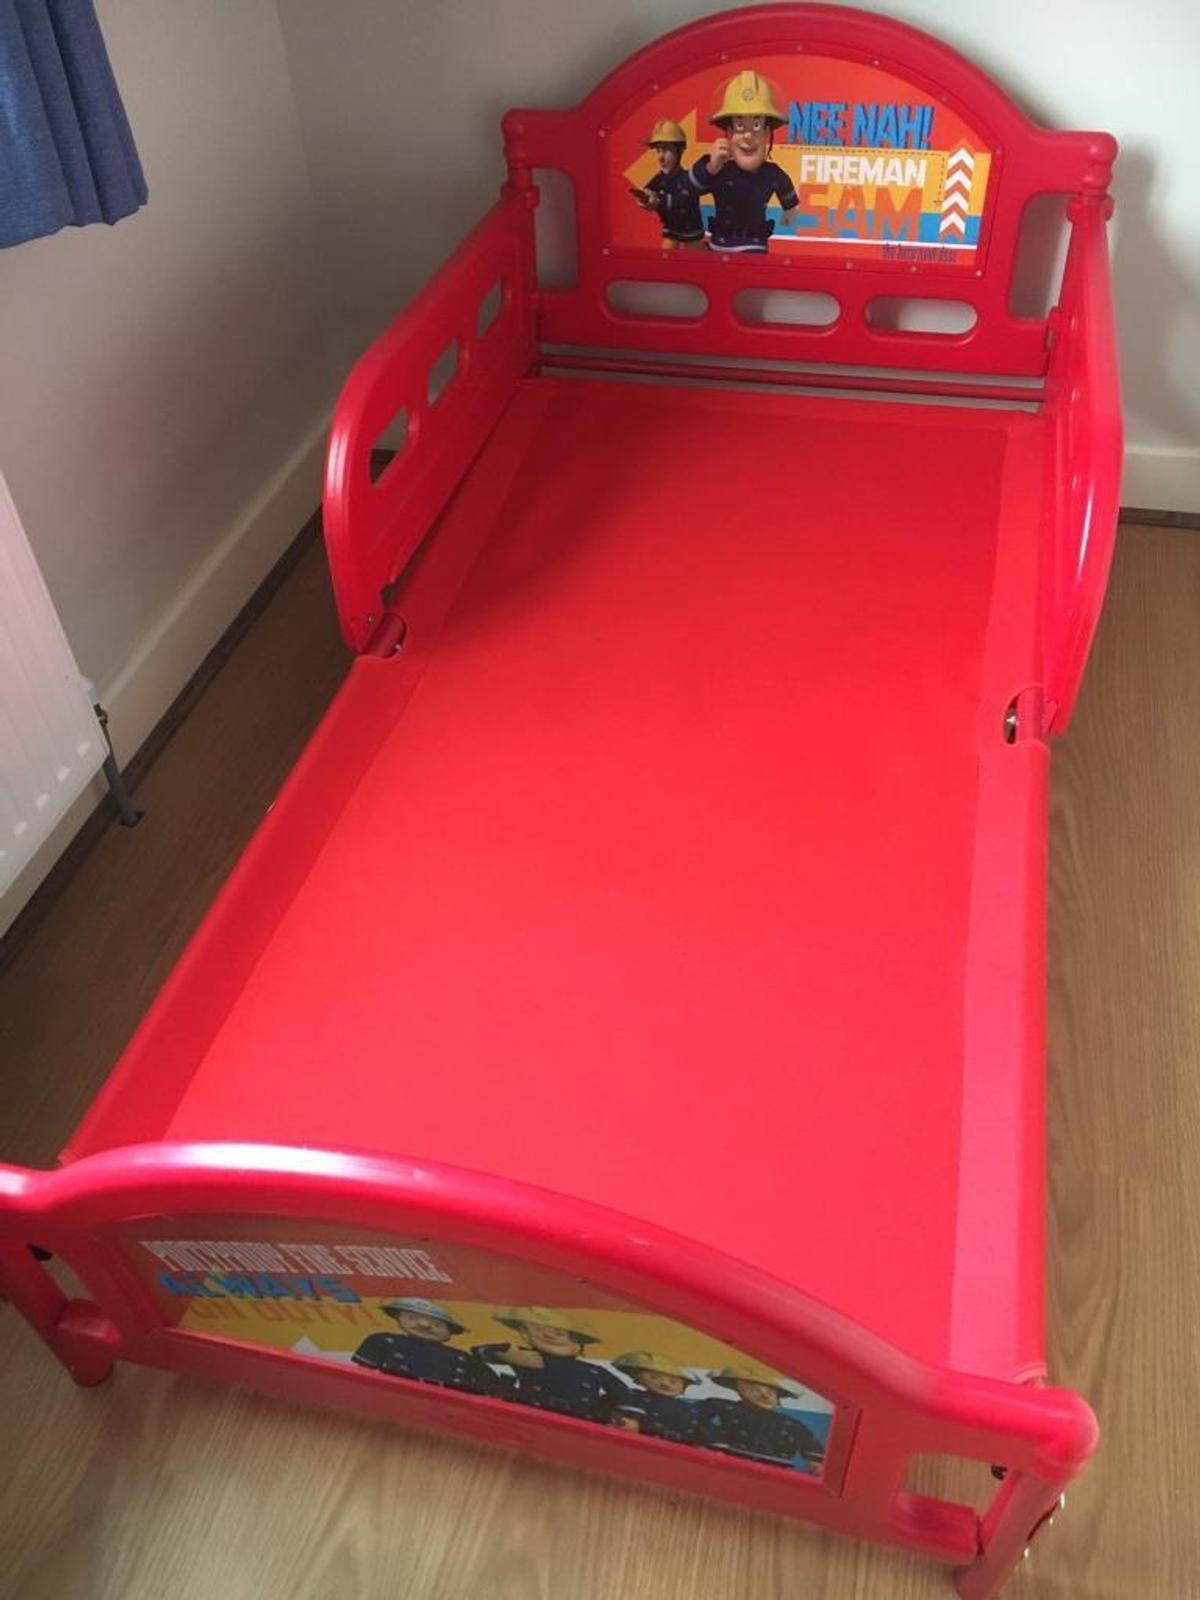 new style f86bc 4b0ee Fireman sam toddler bed in E17 Epping Forest for £50.00 for ...